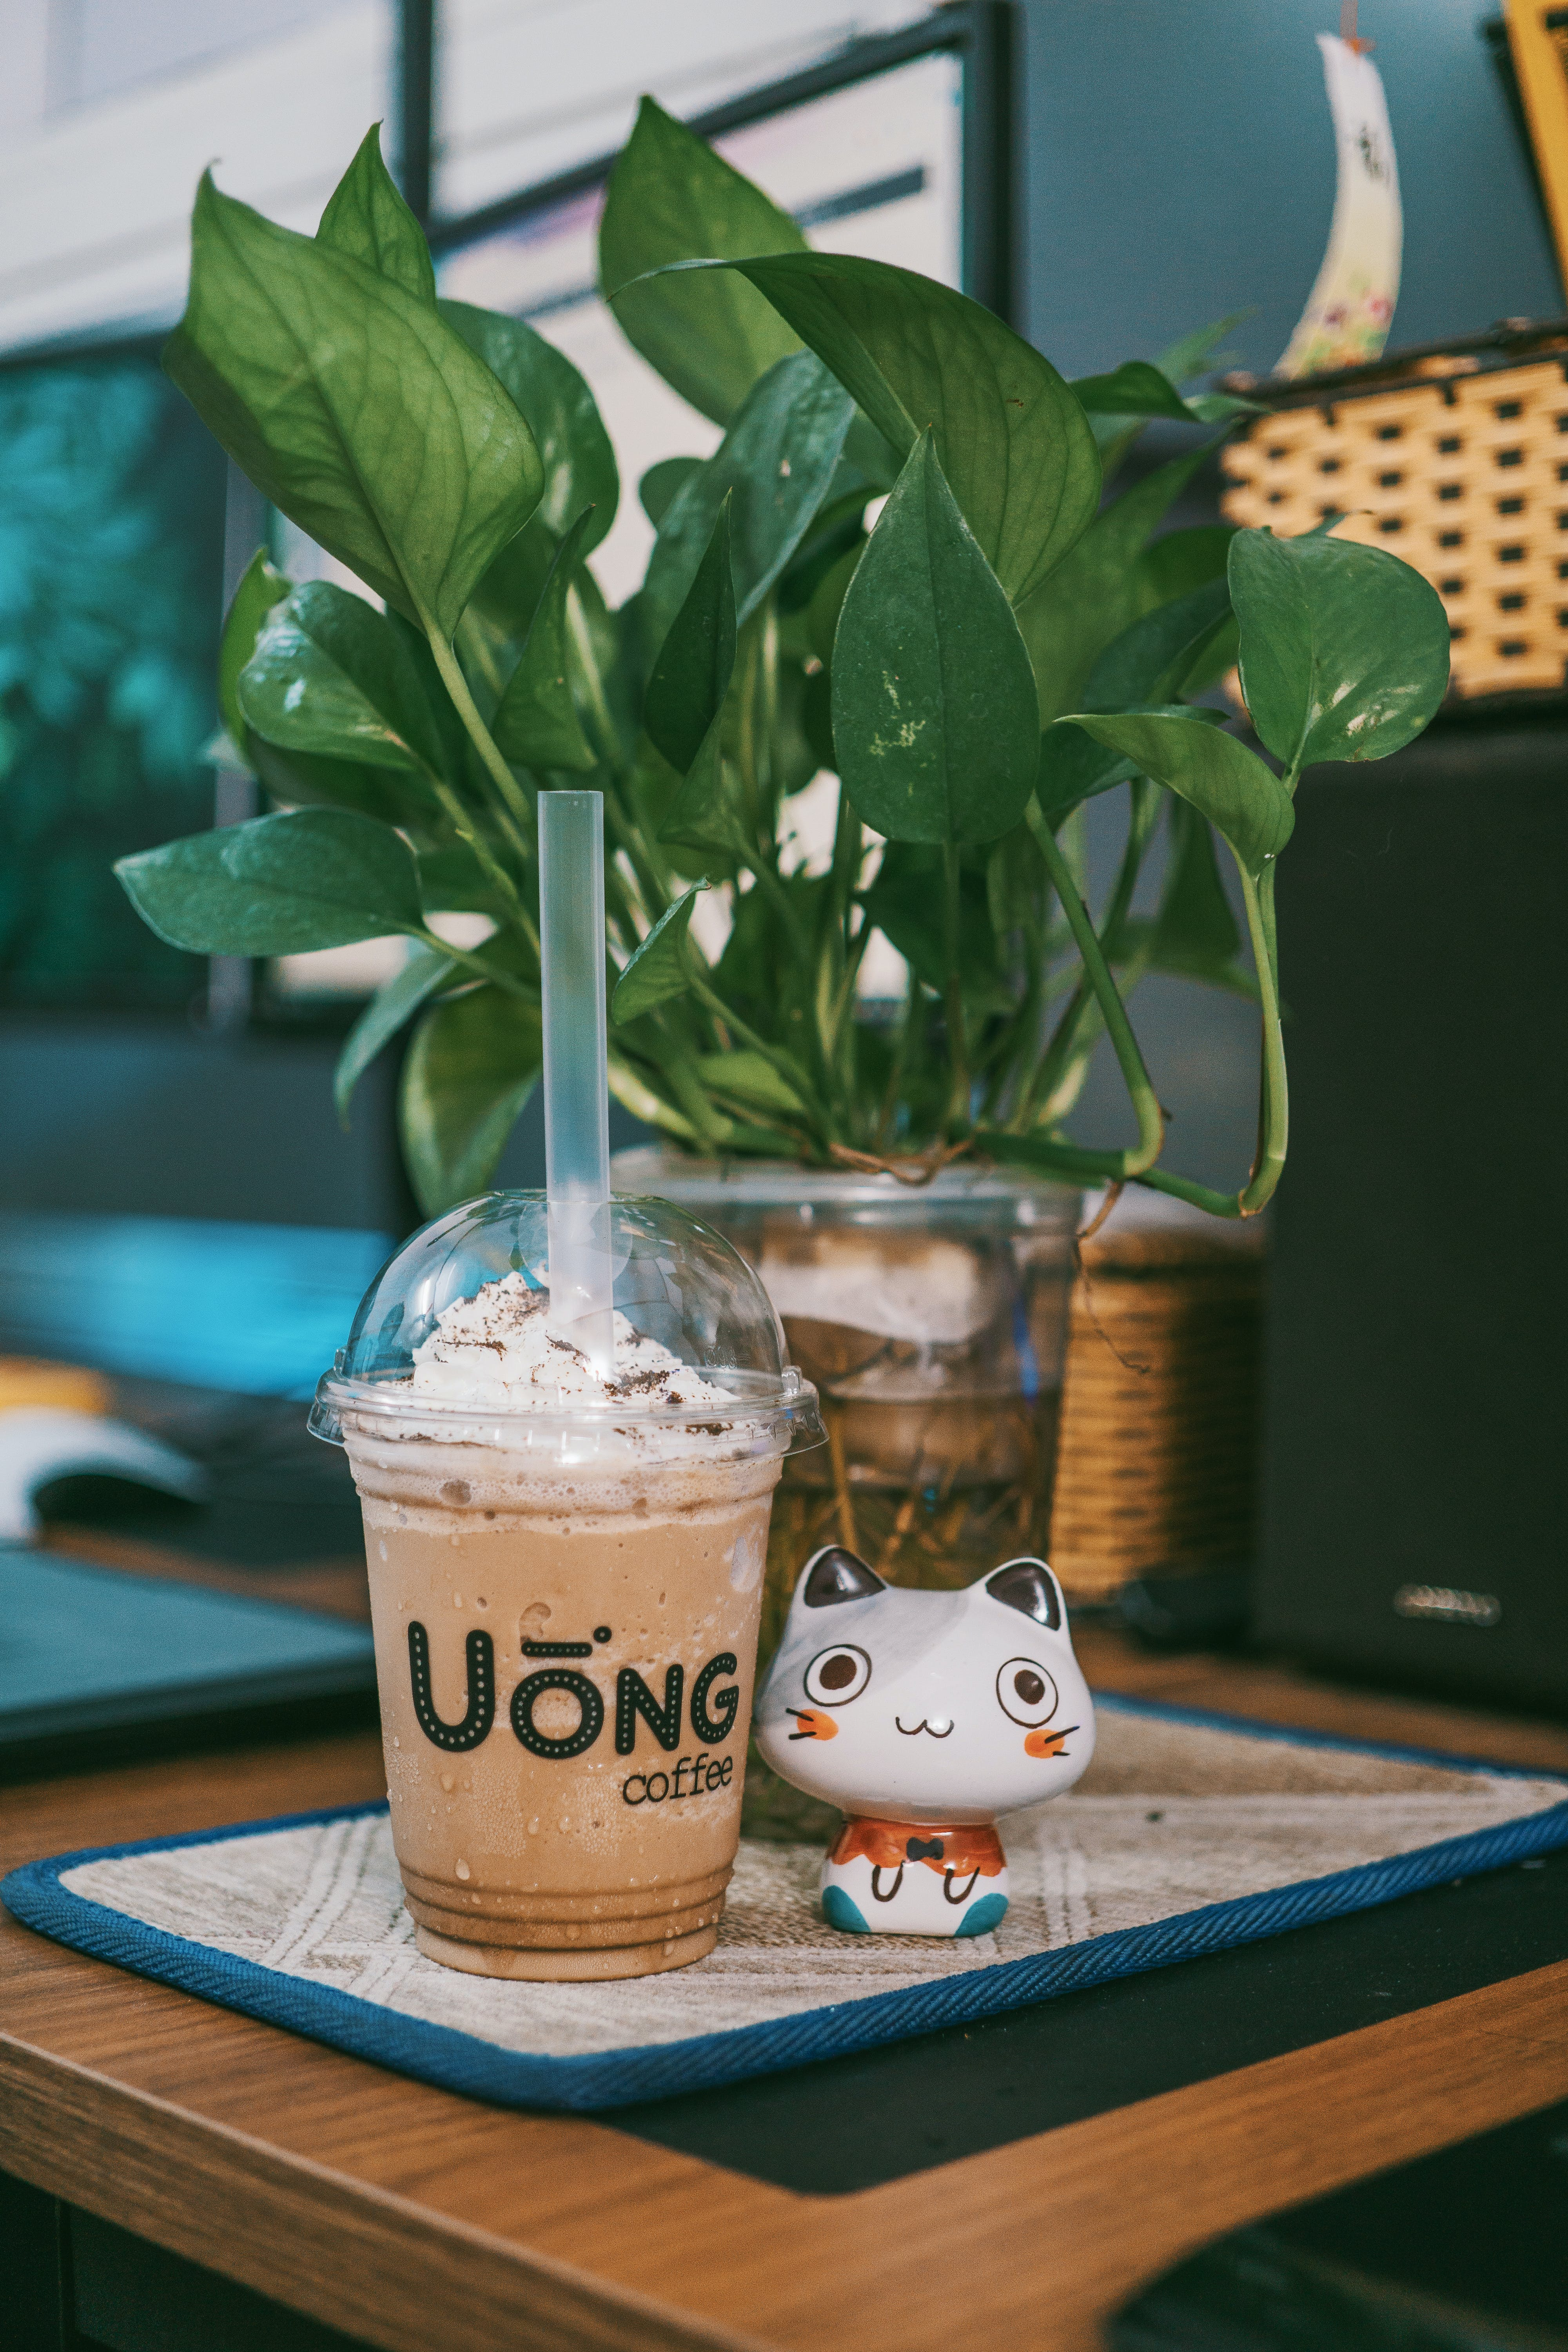 Uong Coffee Disposable Cup Near Cat Figurine on Table